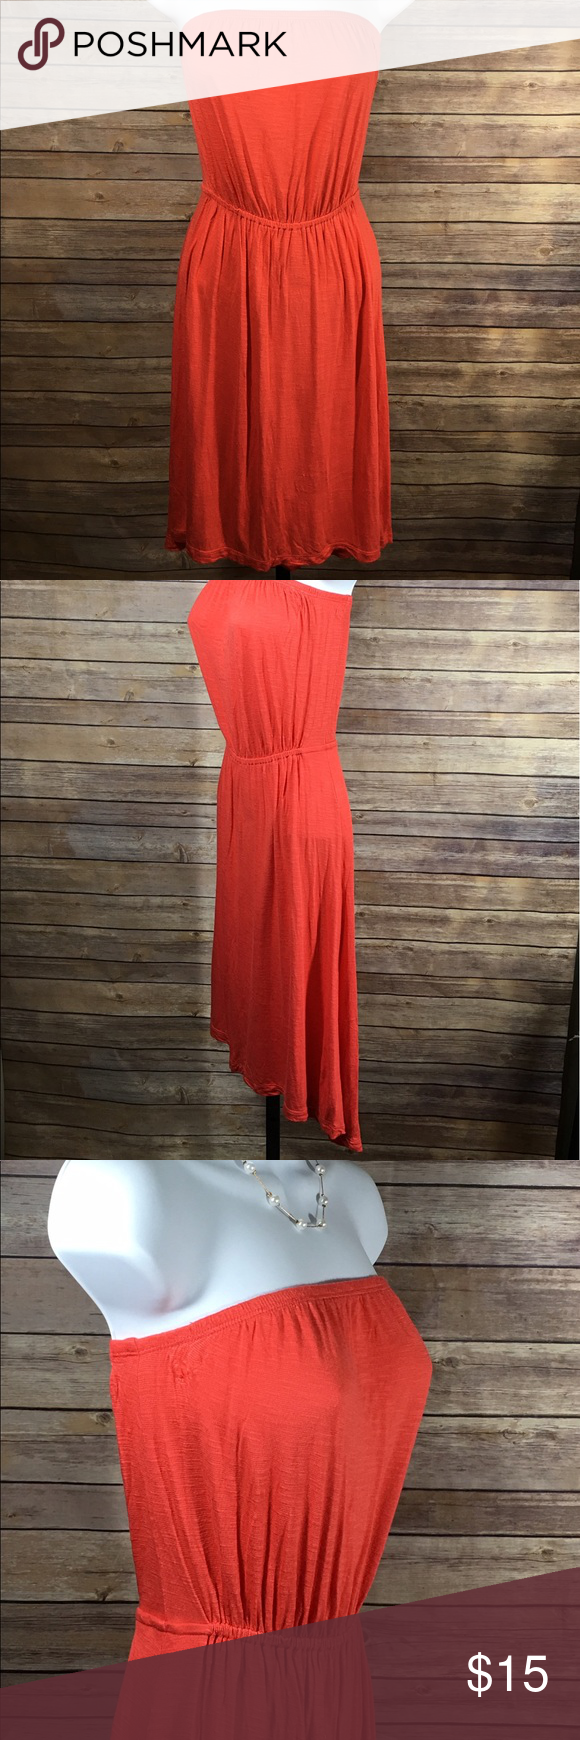 Old Navy Orange Maxi Hi Lo Strapless Dress Size XS Old Navy Womens Maxi Hi Lo Asymmetrical Strapless Sleeveless Dress  Elastic around the Top of Dress for Better Hold Color:  Orange Size:  XS Approximate Top Center to Bottom Hem Measurements:  33 inches Approximate Arm to Arm Measurements:  15 inches Made in Vietnam Excellent Used Condition Old Navy Dresses Asymmetrical